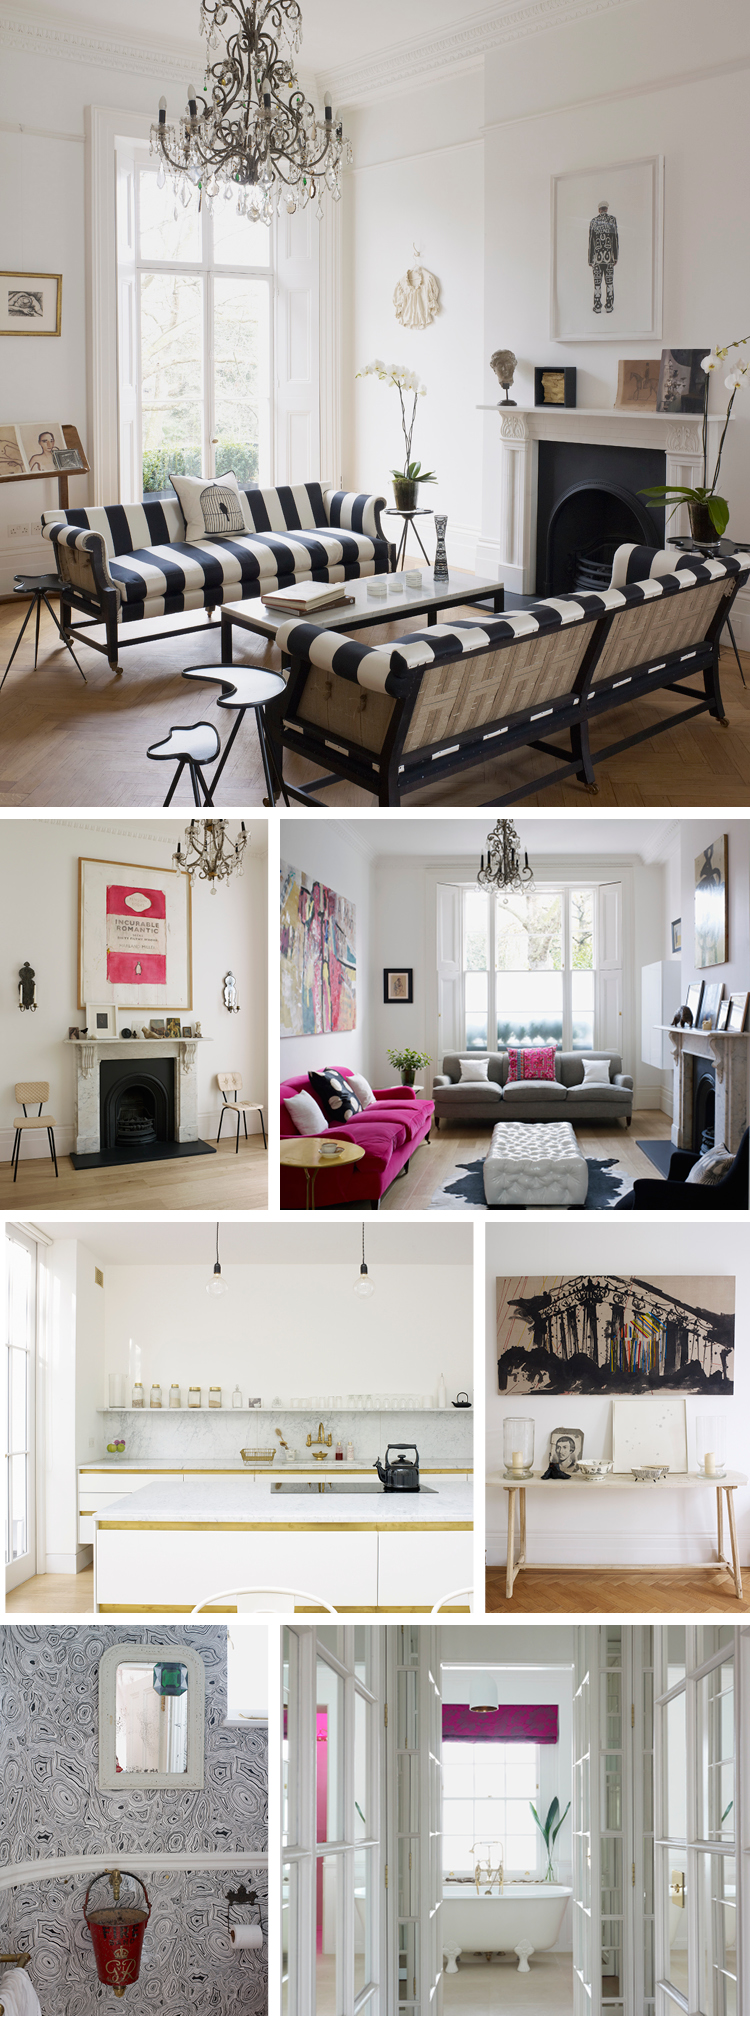 Harriet_Anstruther_London_Townhouse_Tour_HavenandHive.jpg